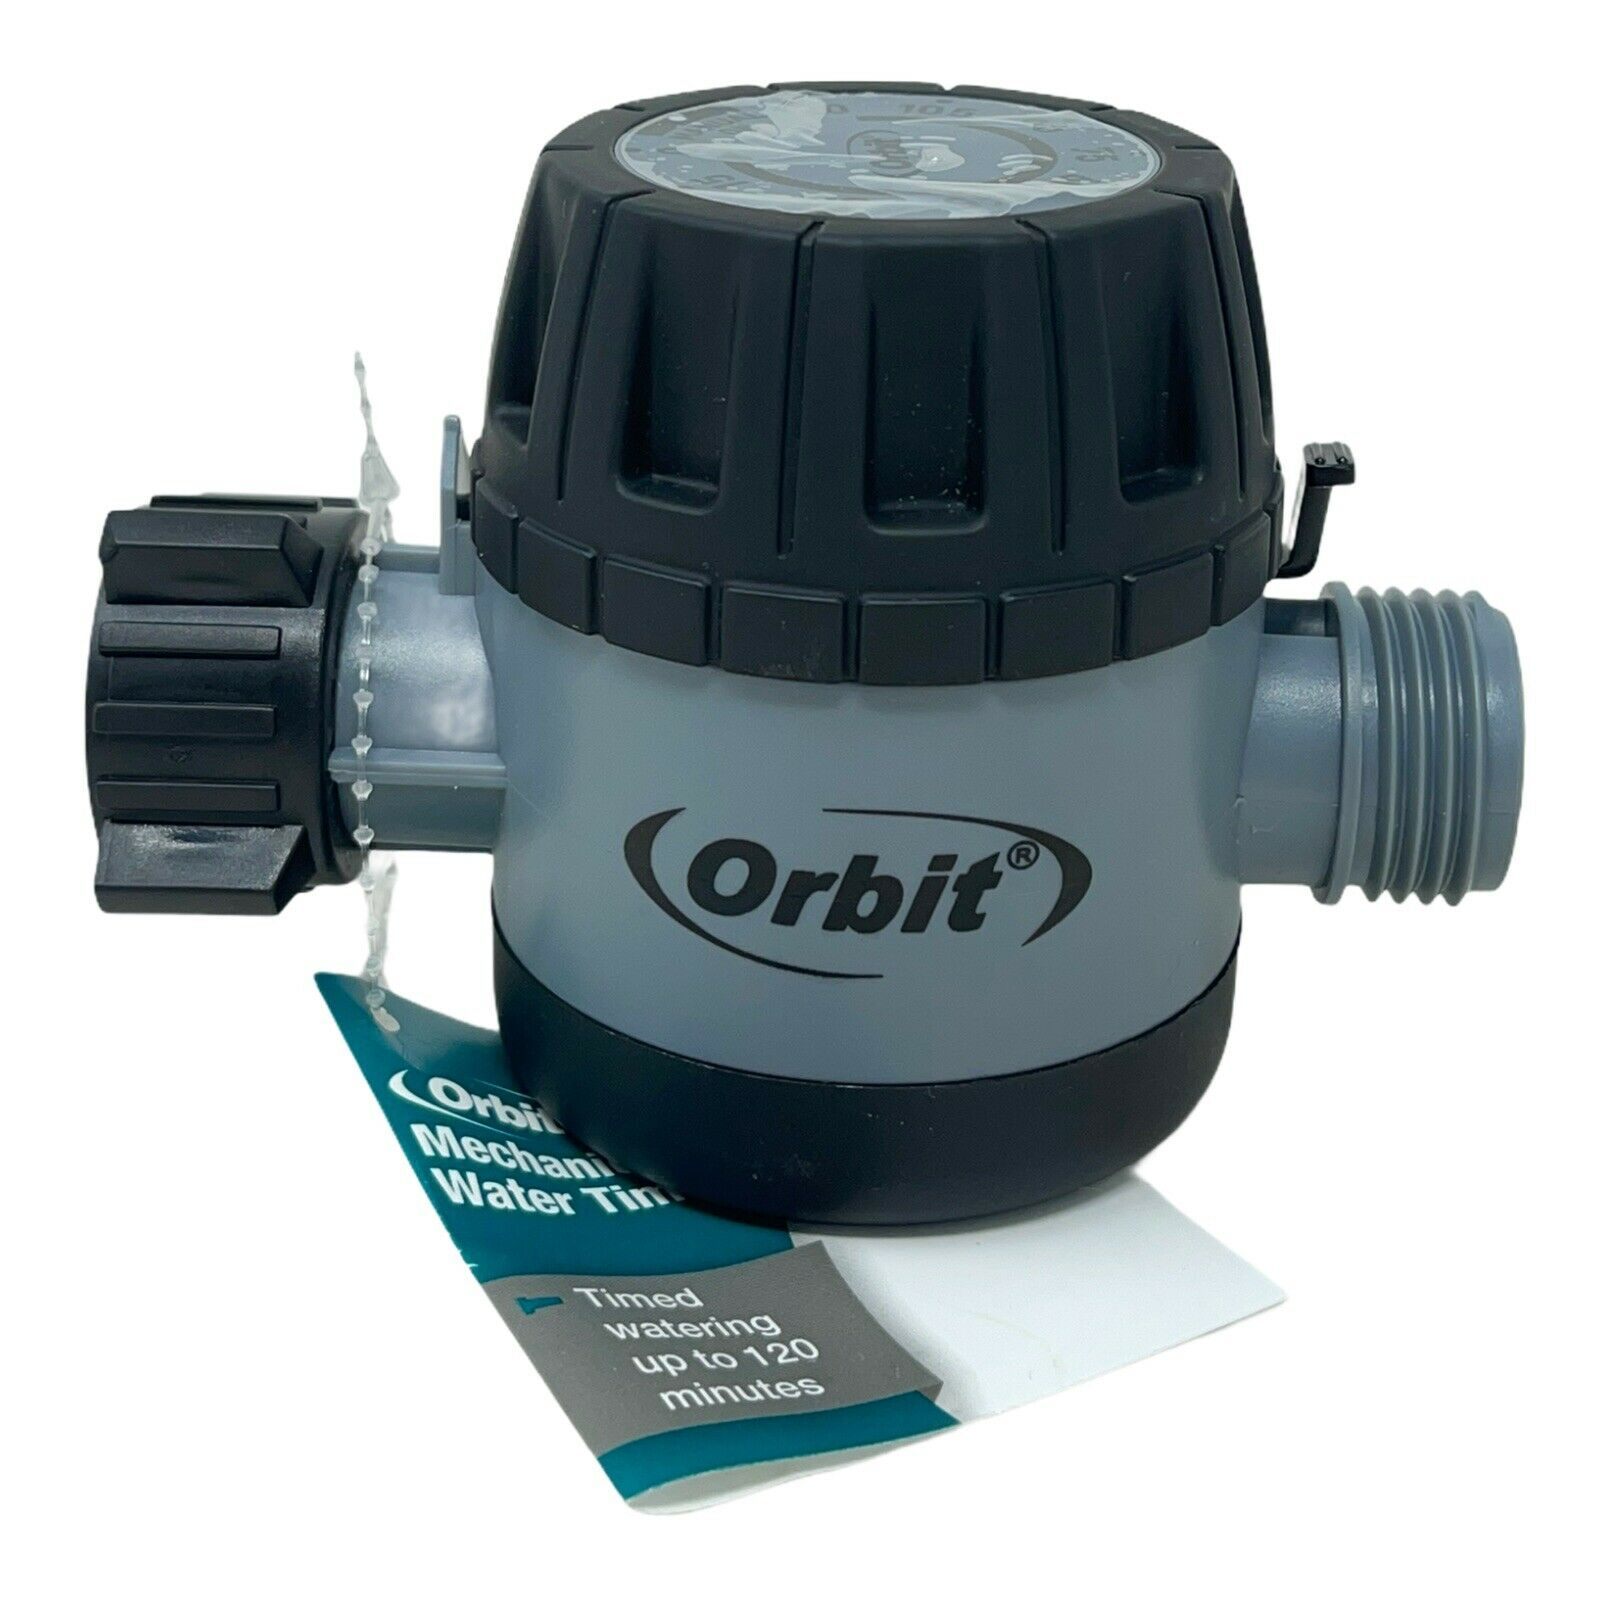 Orbit Mechanical Water Timer - 56908 - New Unused- Fast Free Shipping